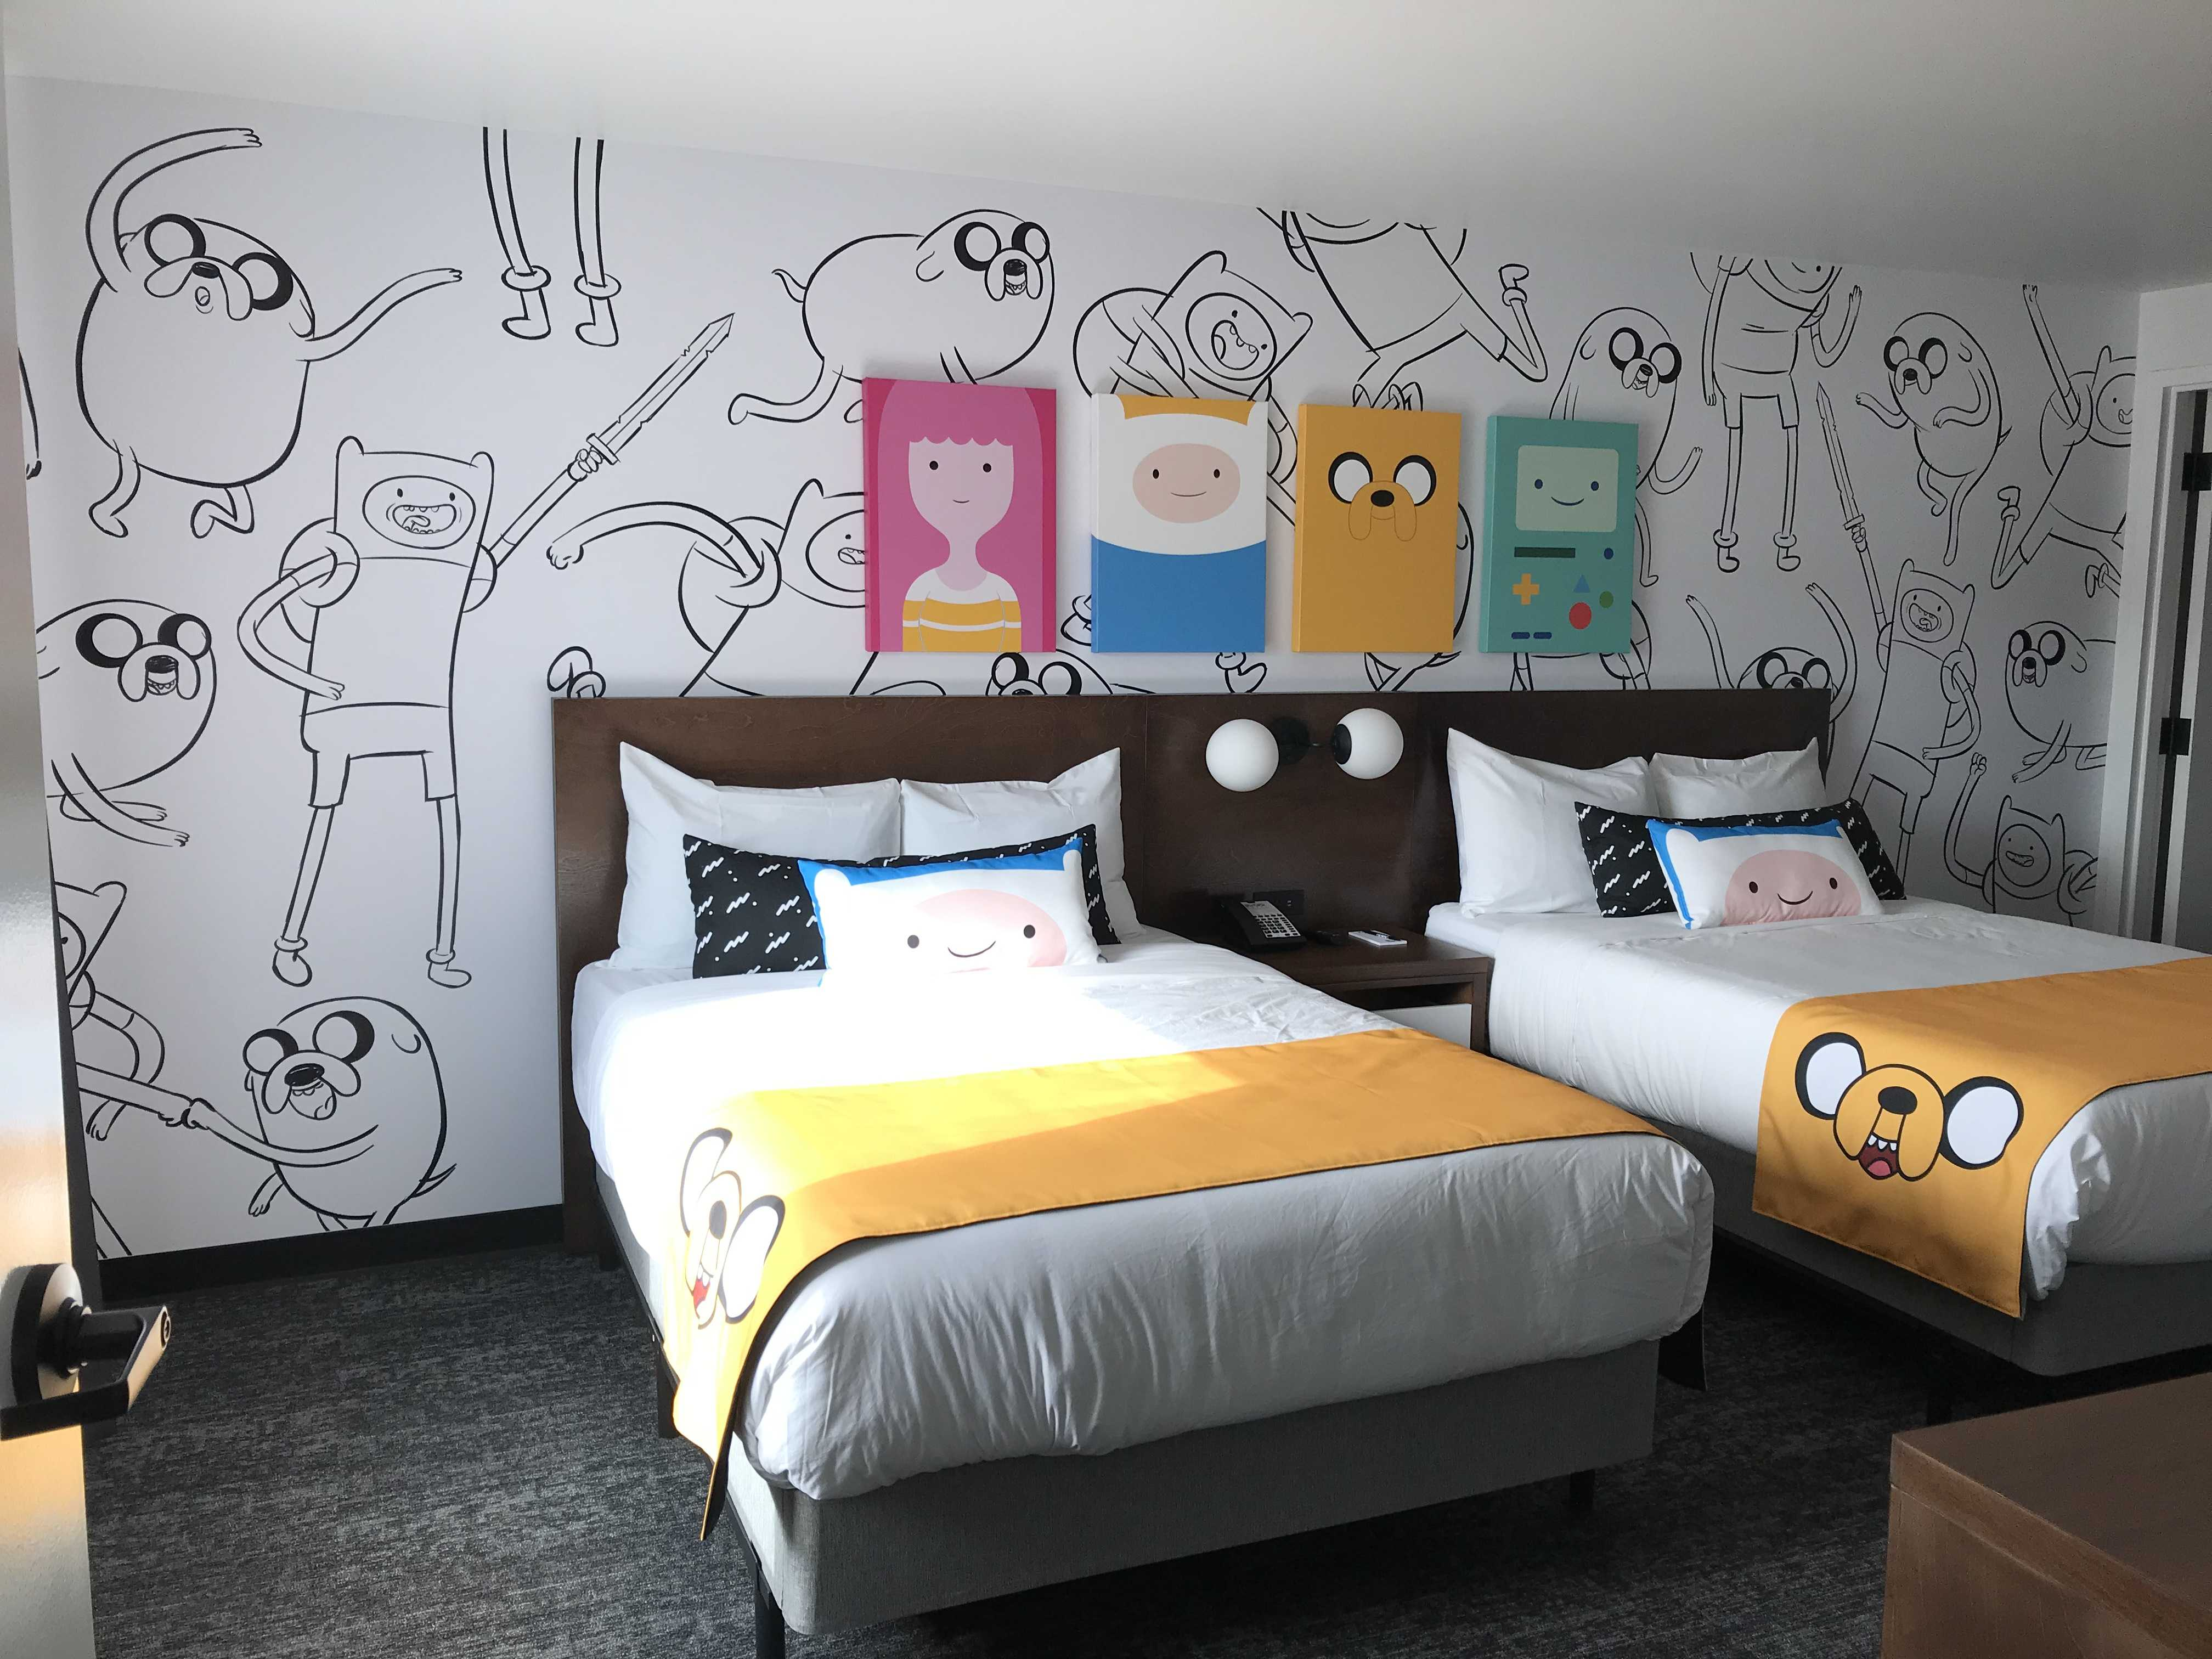 Cartoon Network Hotel Opens In Lancaster County